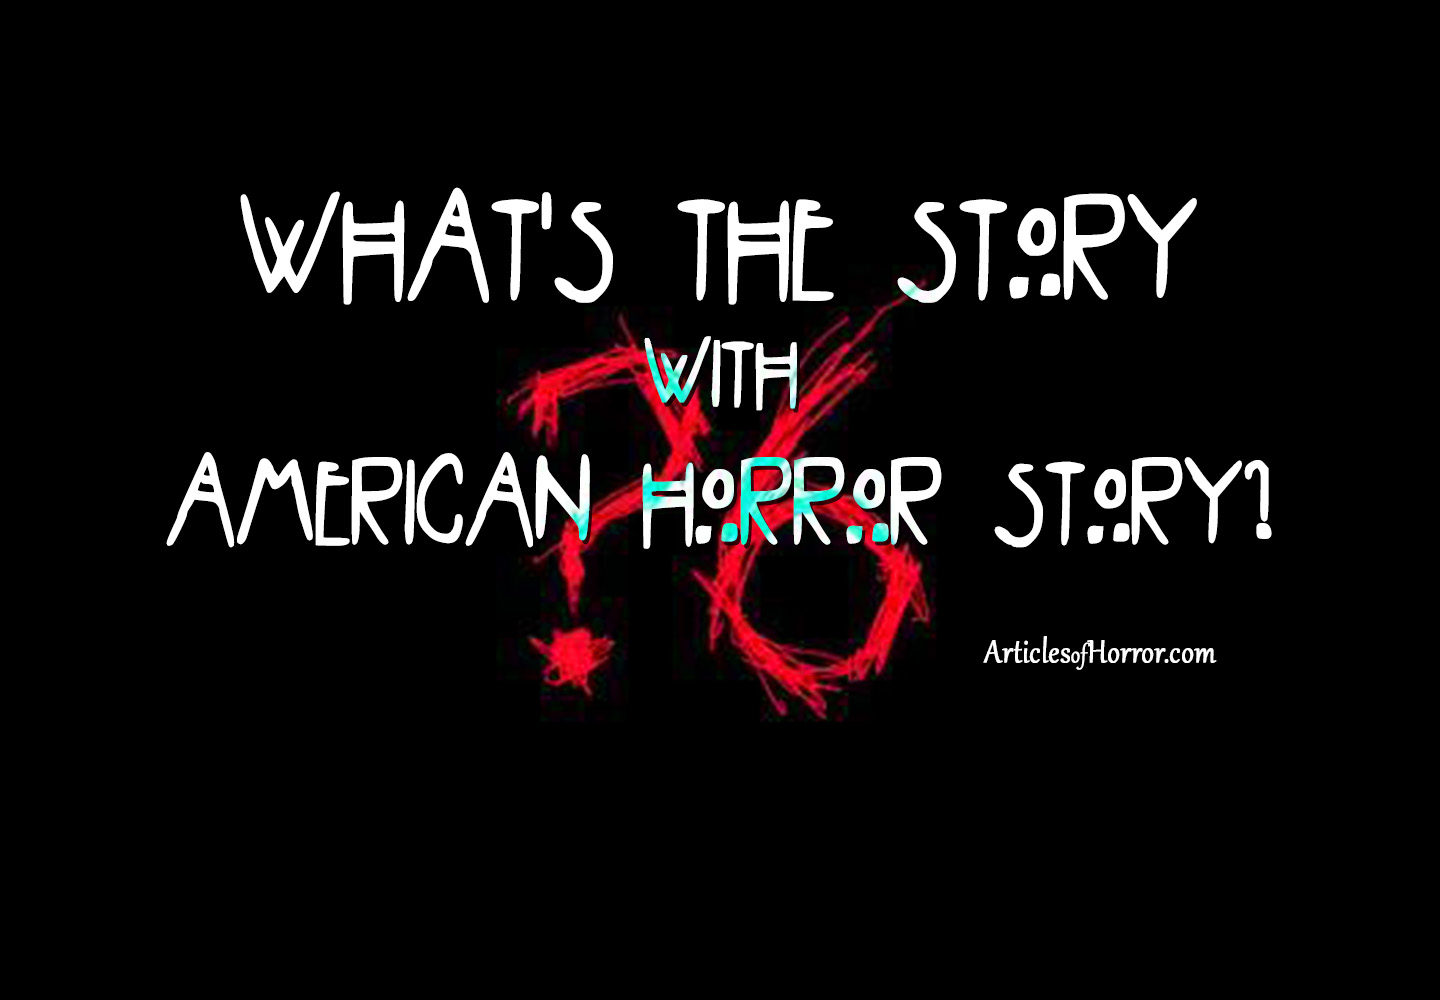 What's the Story with American Horror Story?